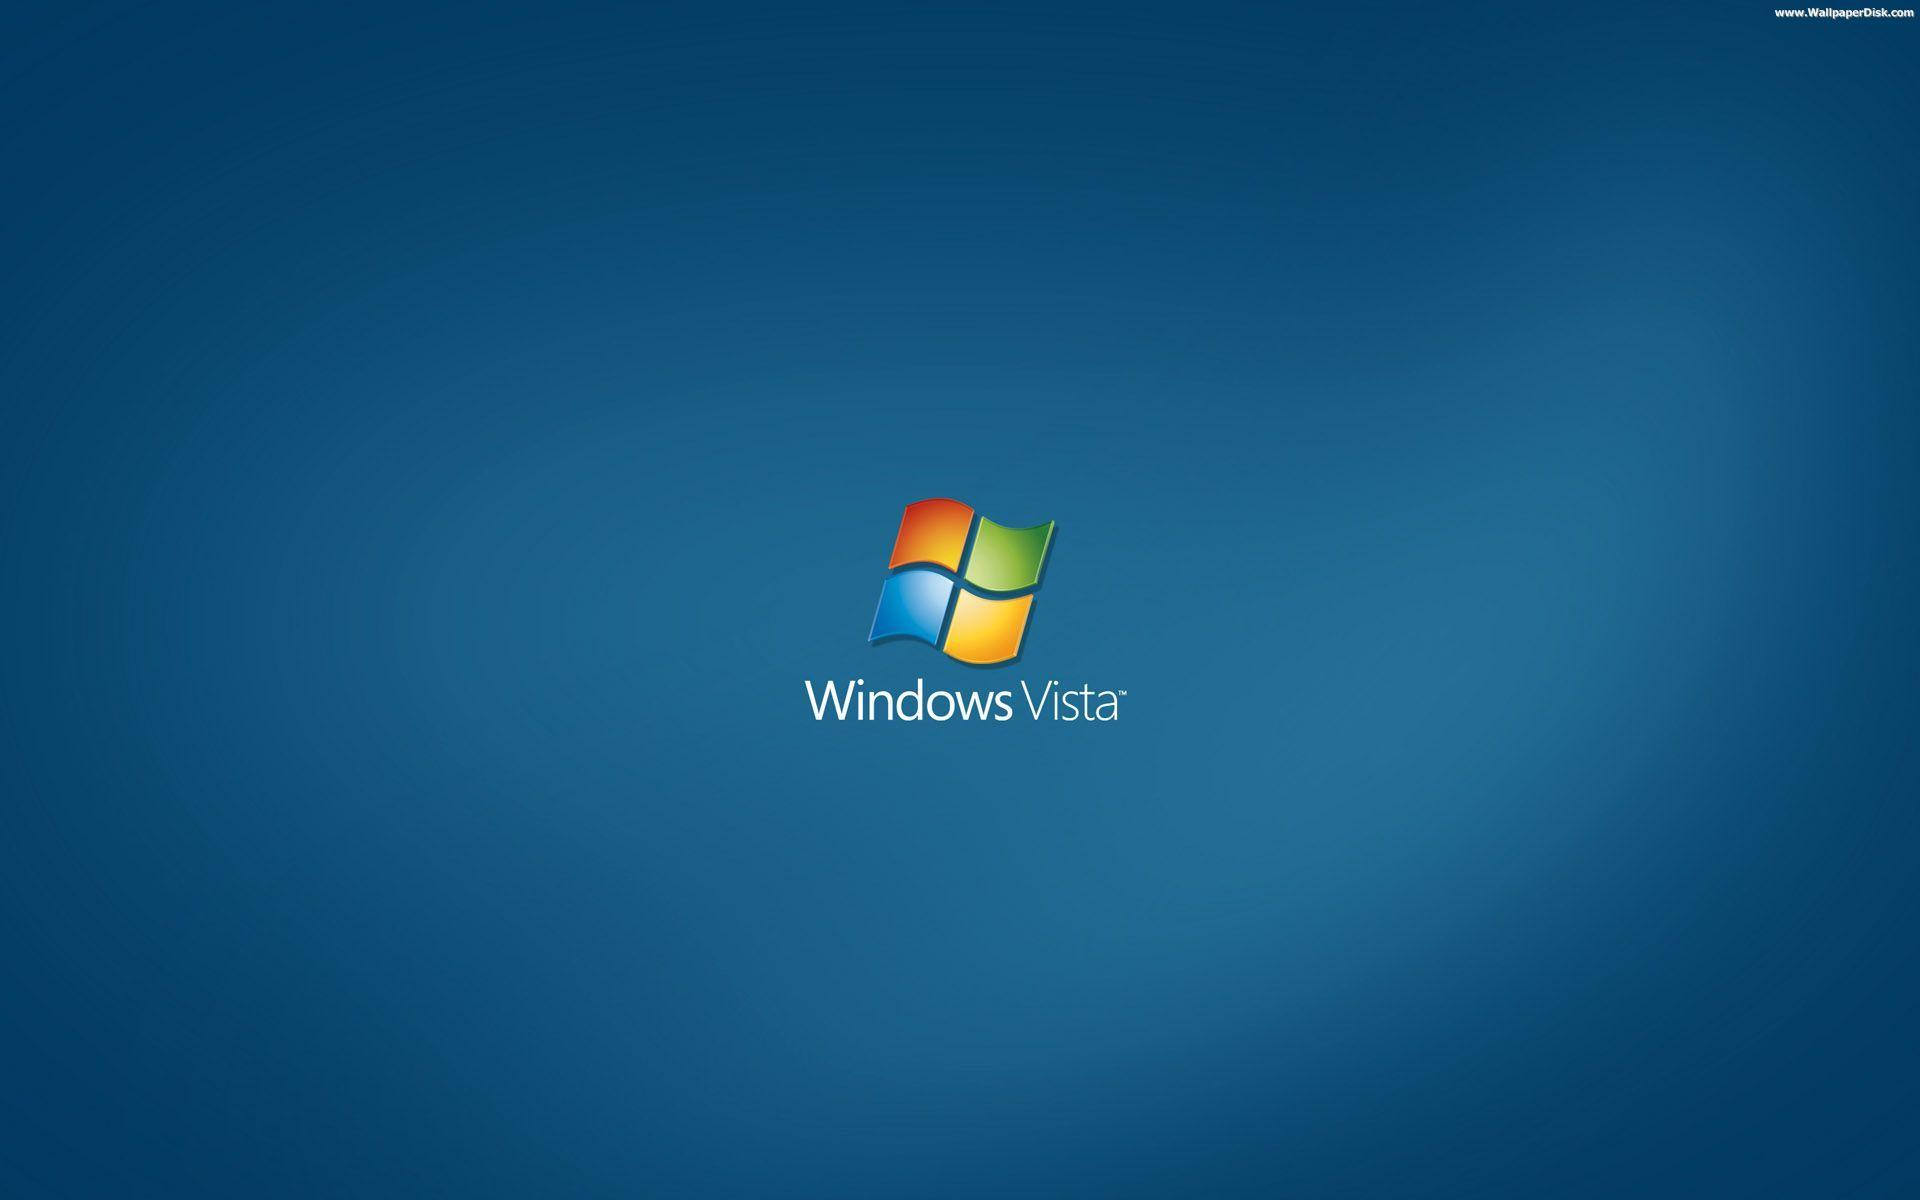 Windows Wallpaper Program - WallpaperSafari